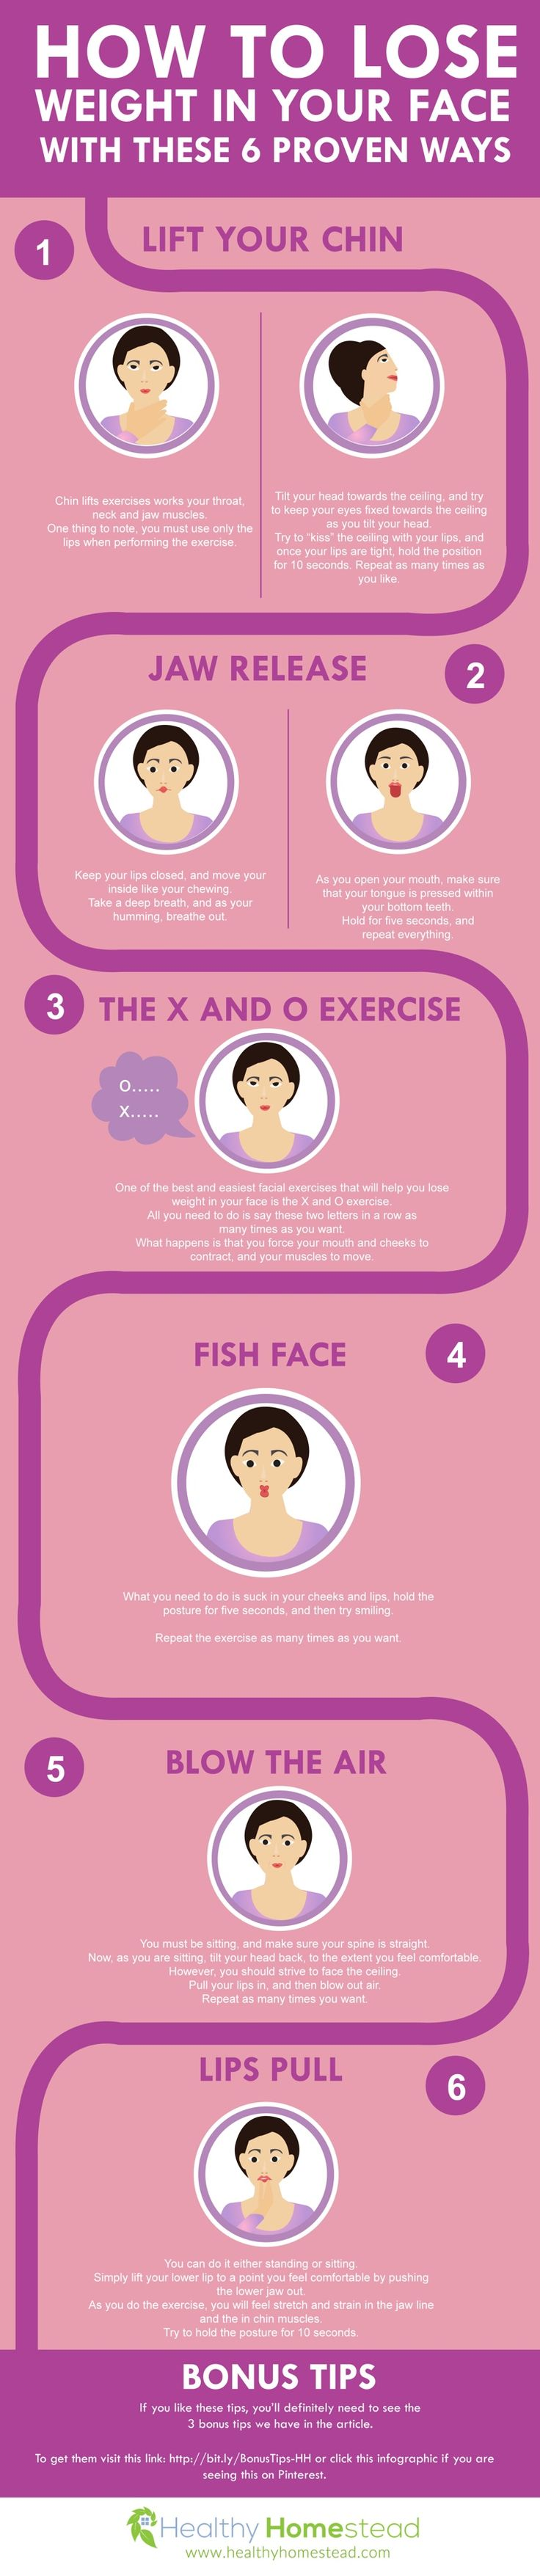 How to Lose Weight in Your Face With These 6 Proven Ways via @healthyhomestea